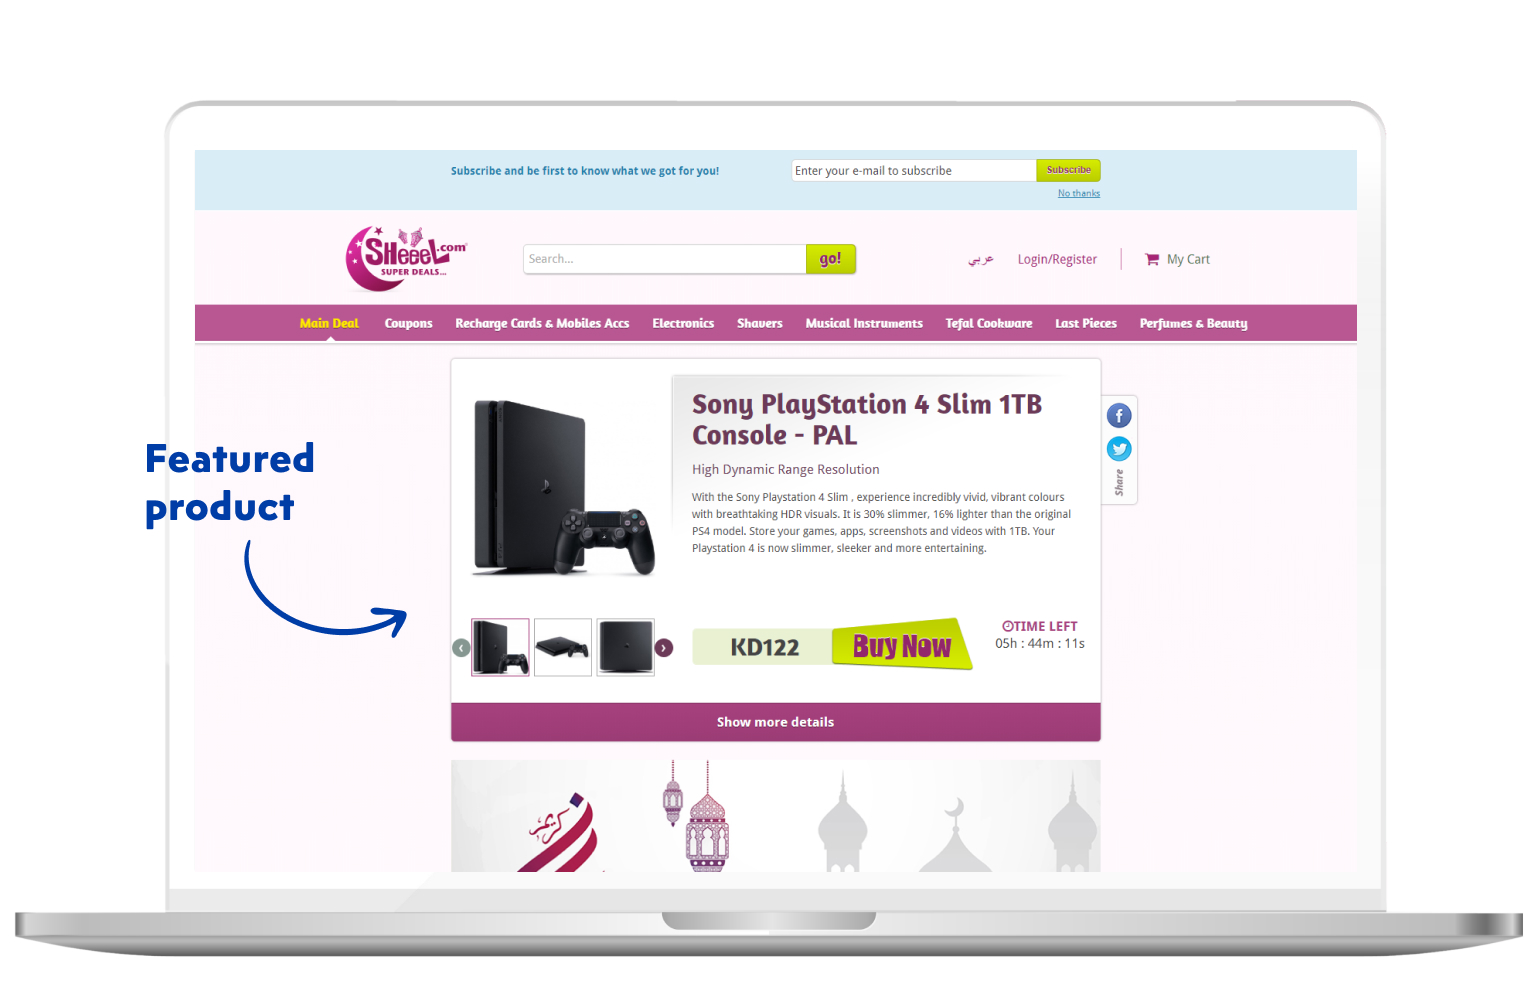 Ultimate list of eCommerce website features